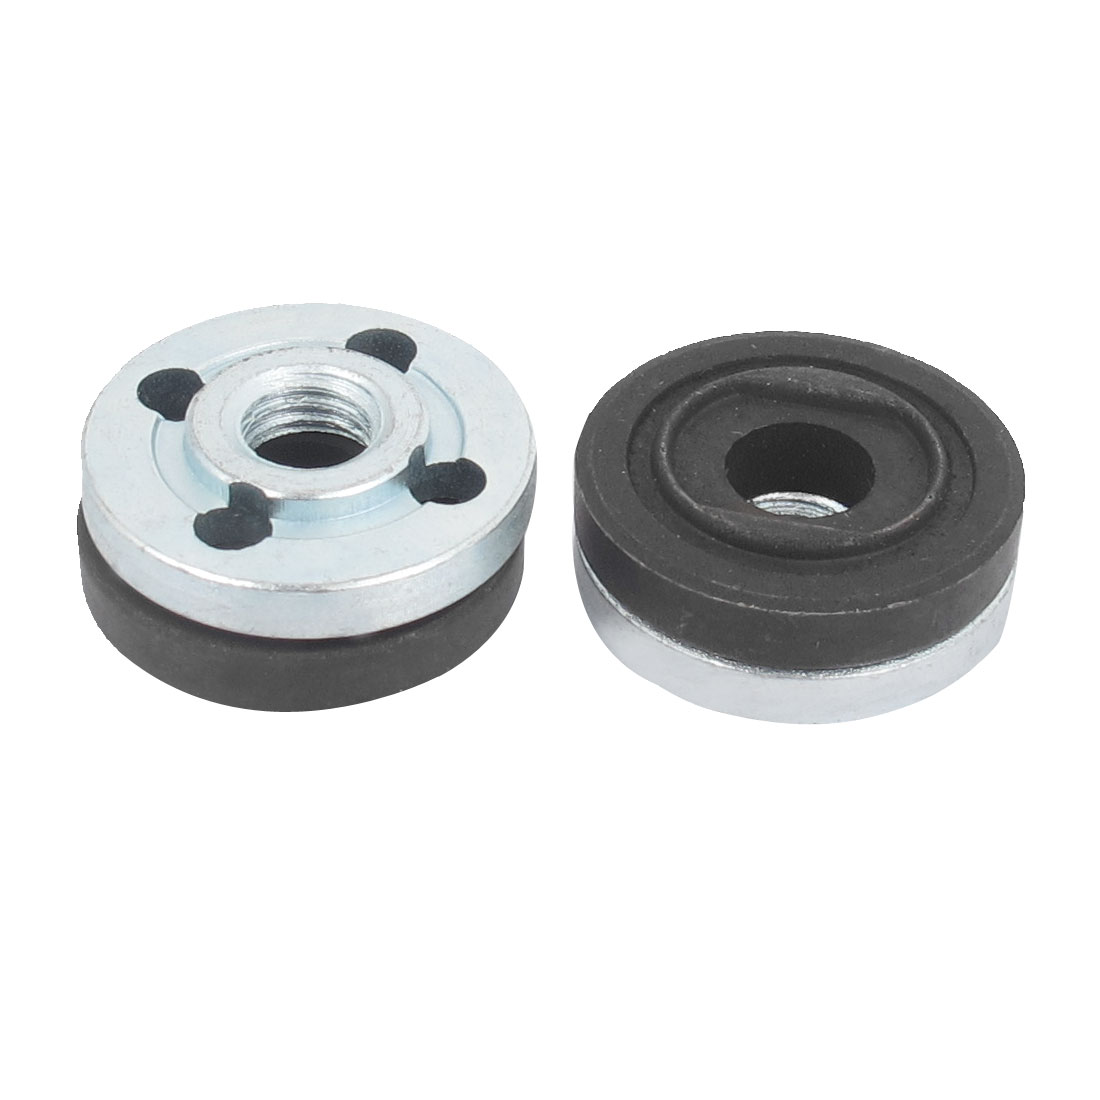 2 Pair Black Silver Tone Metal Round Clamp Cut off Machine Replacement Metal Inner Outer Nuts Flange for Makita 9523 Angle Grinder